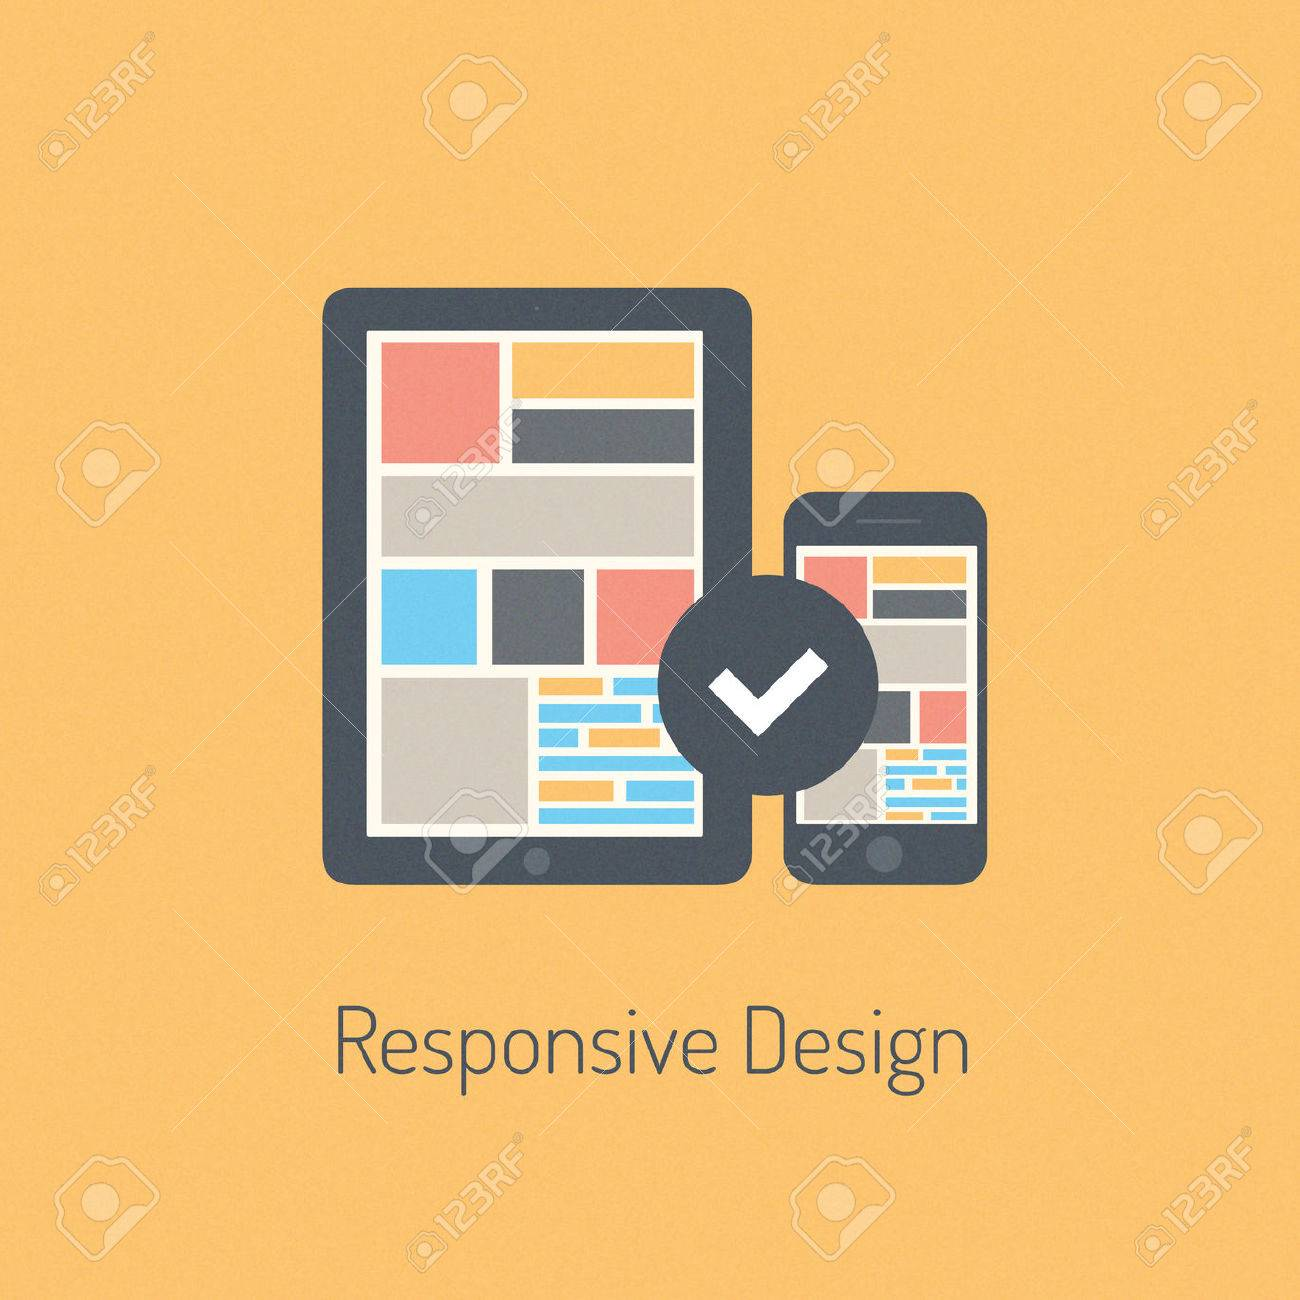 Flat design modern vector illustration concept of fully responsive user interface on digital tablet and mobile phone  Isolated on stylish colored background Stock Vector - 24407241